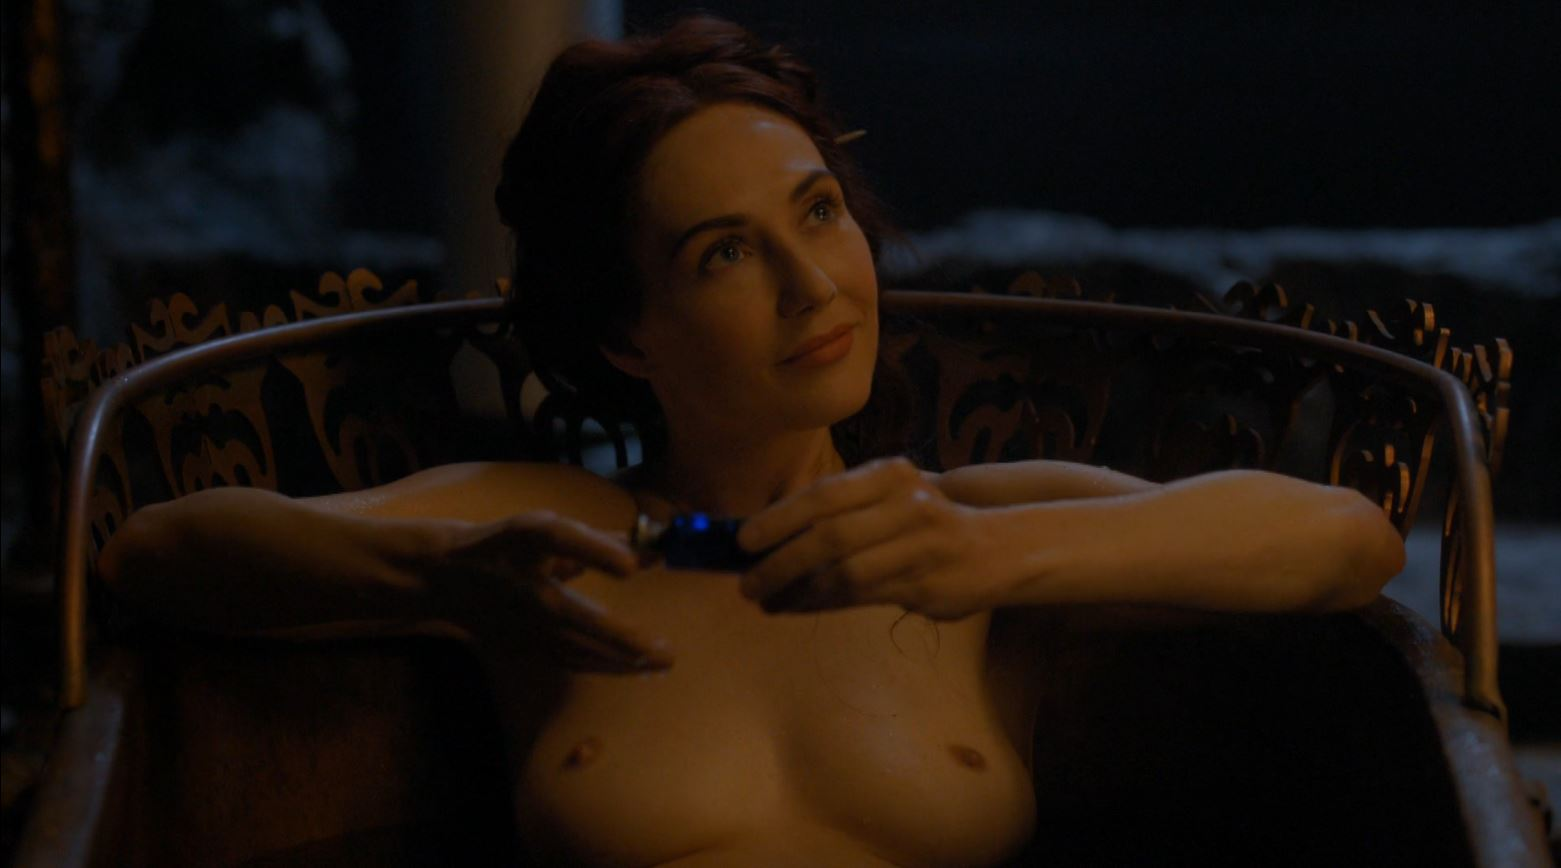 Game Of Thrones S4Ep7 Mockingbird Review - Carice van Houten Topless as Melisandre